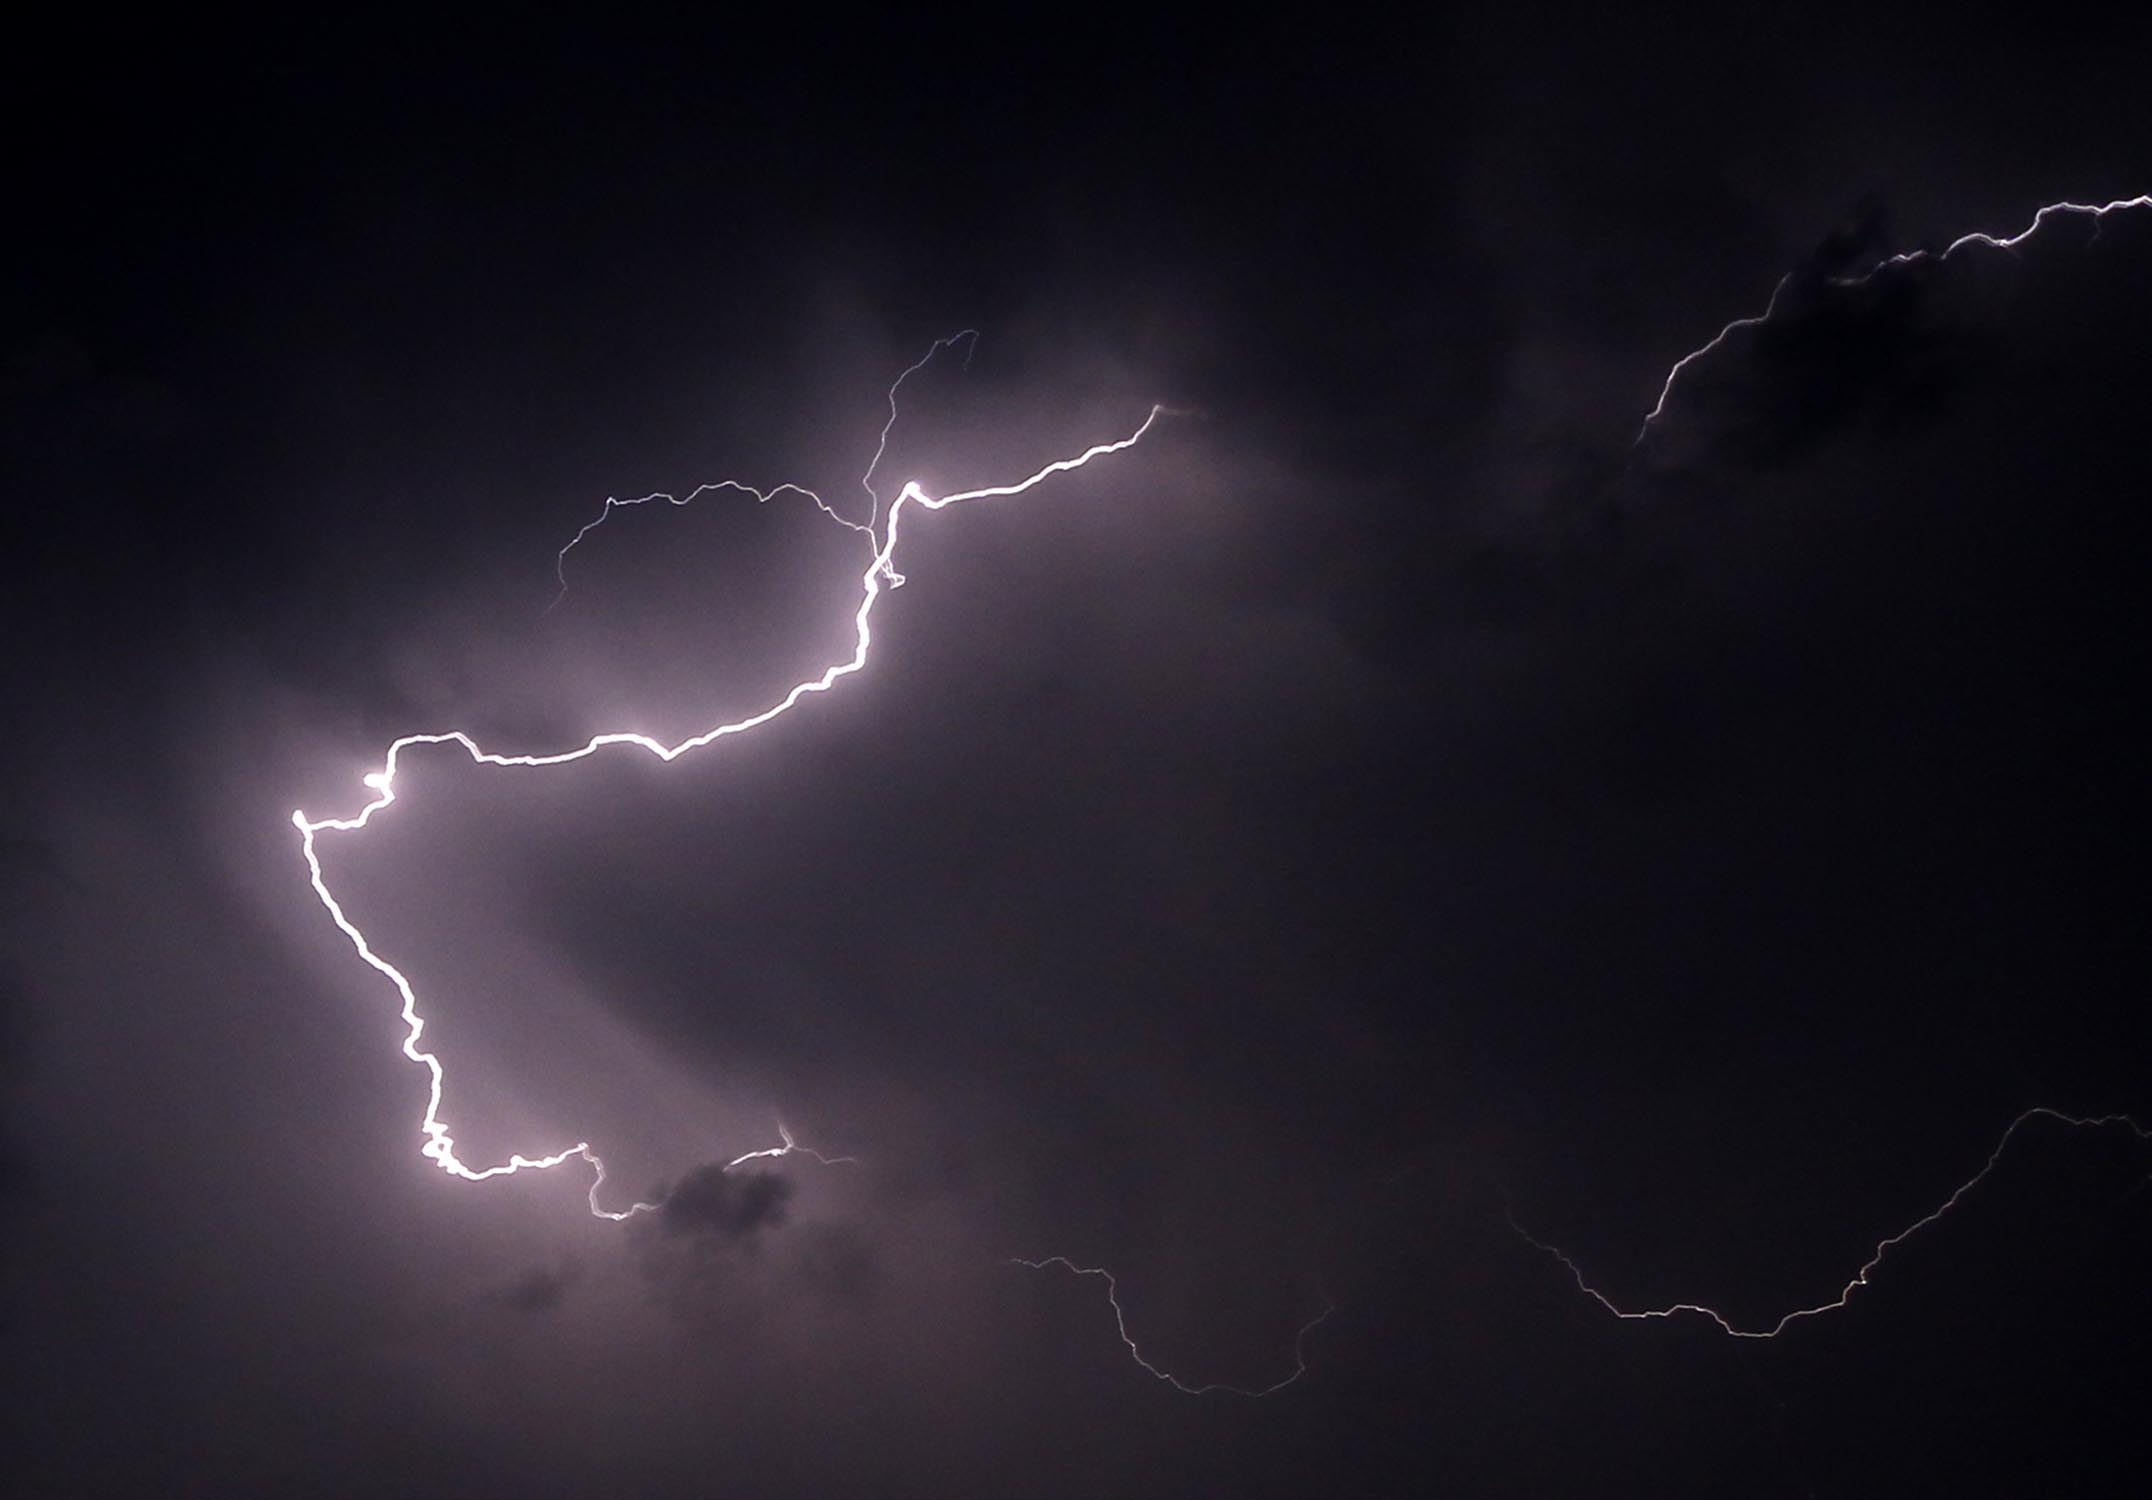 Lightning strikes during a thunderstorm on April 10, 2015 in Jorhat, India.